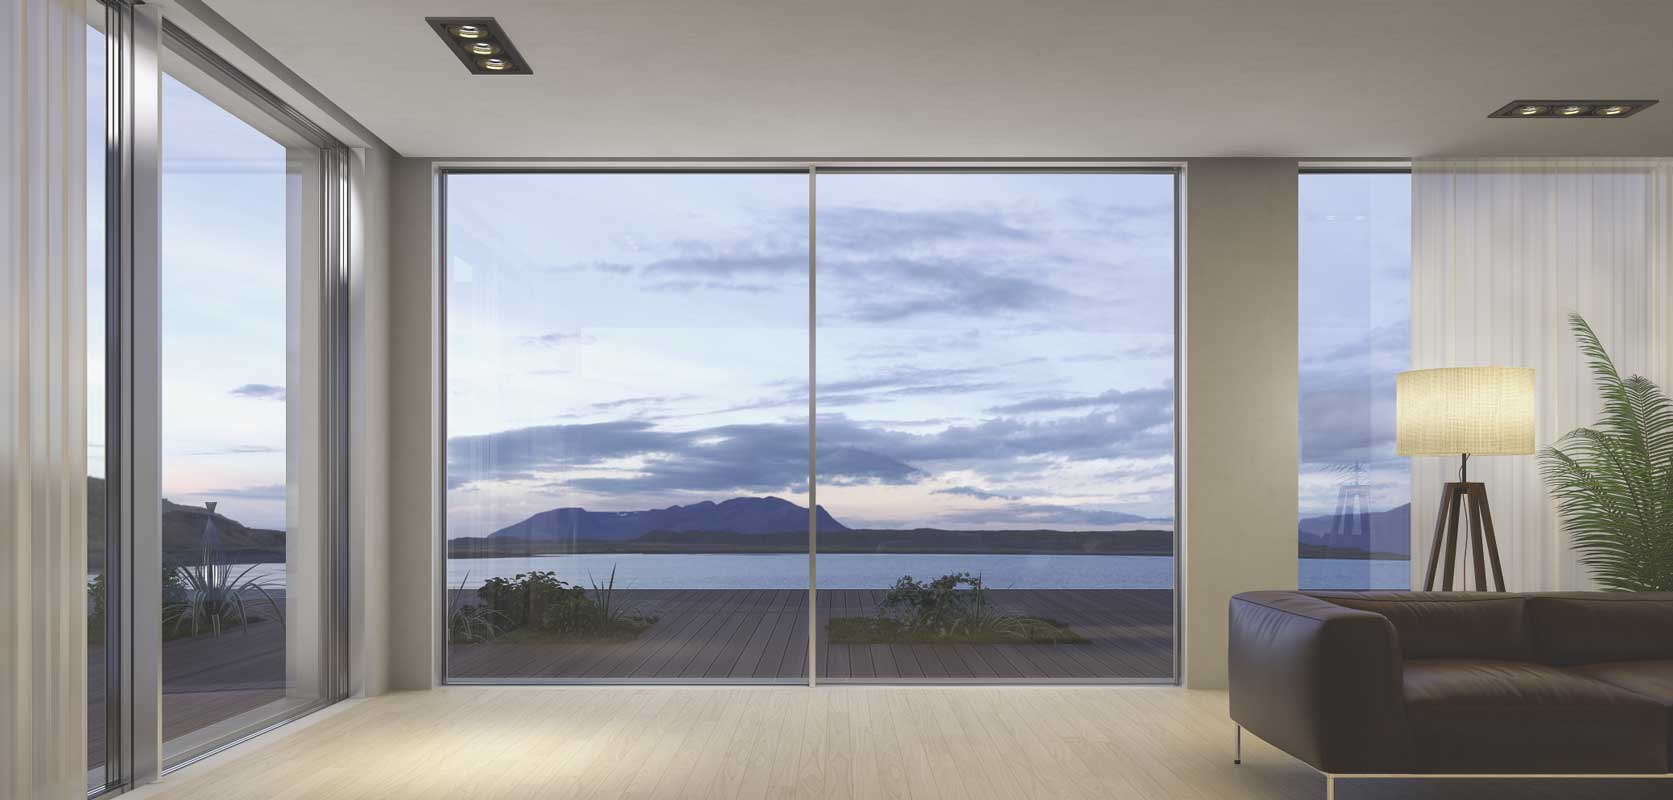 Supreme S650 sliding doors by Alumil